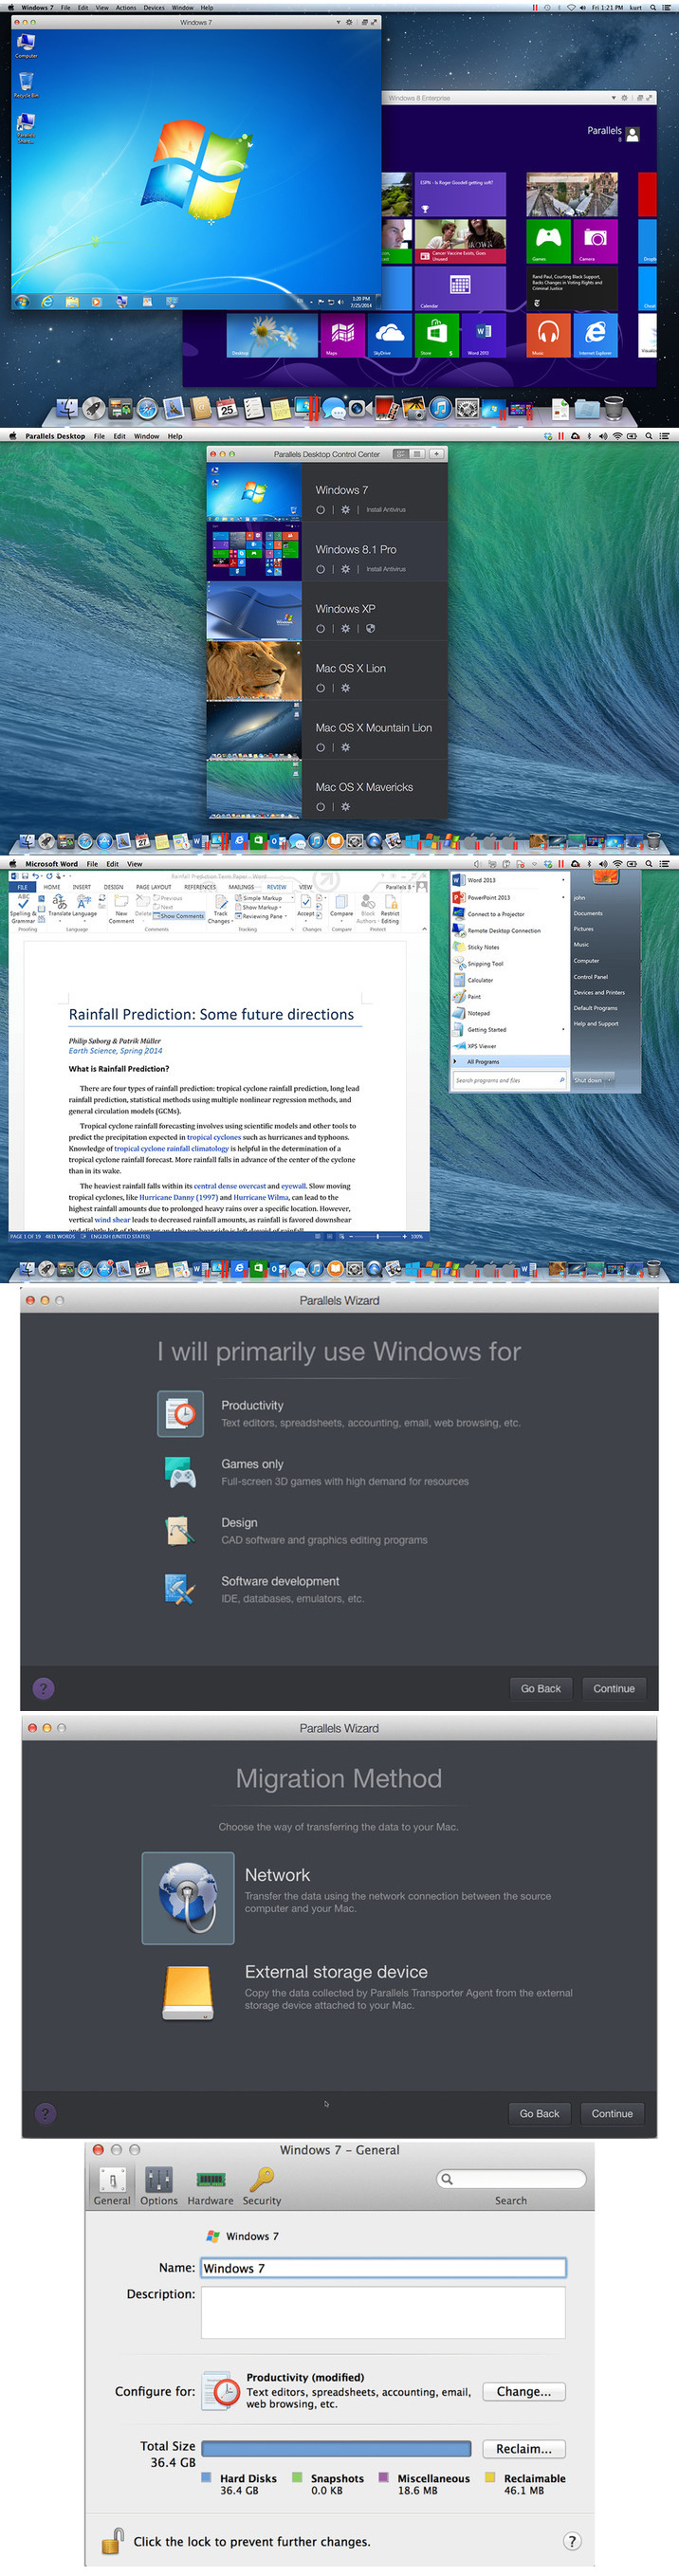 parallels_desktop_business_edition_121341532_cr2